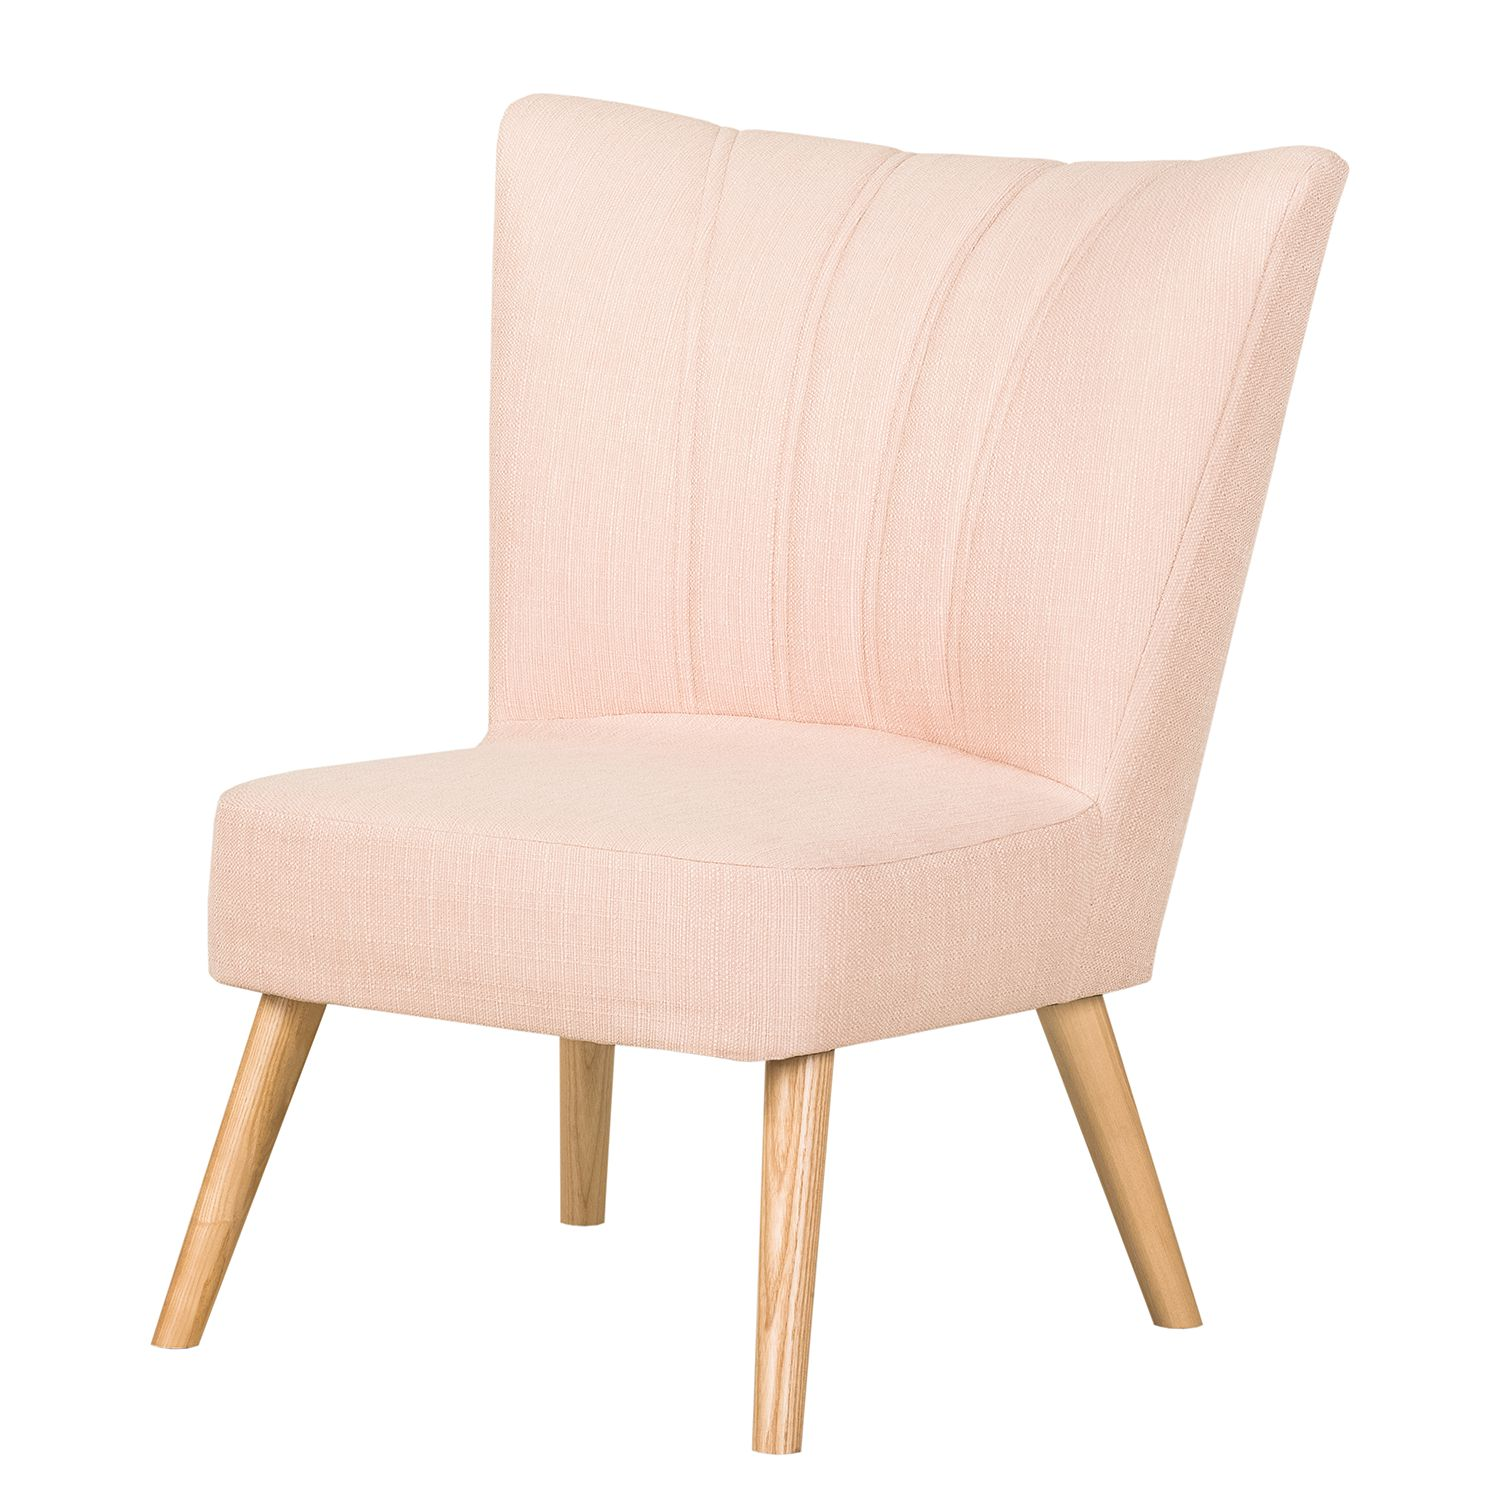 Fauteuil Oona I - Tissu Beige - Couleur pastel abricot, Morteens